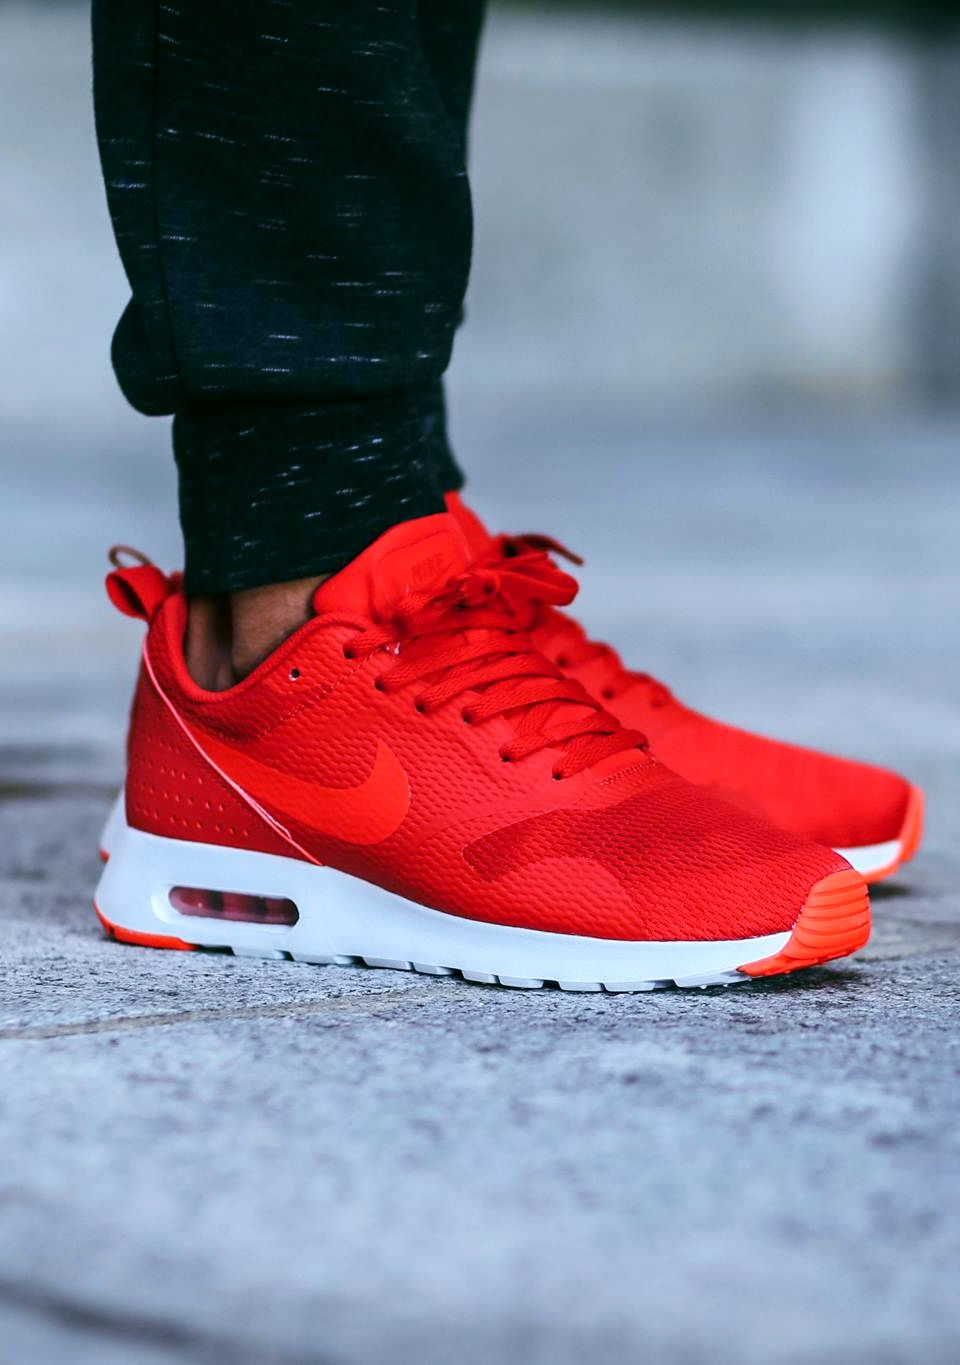 60c89961ca6 Nike Air Max Tavas  University Red  (via Kicks-daily.com)